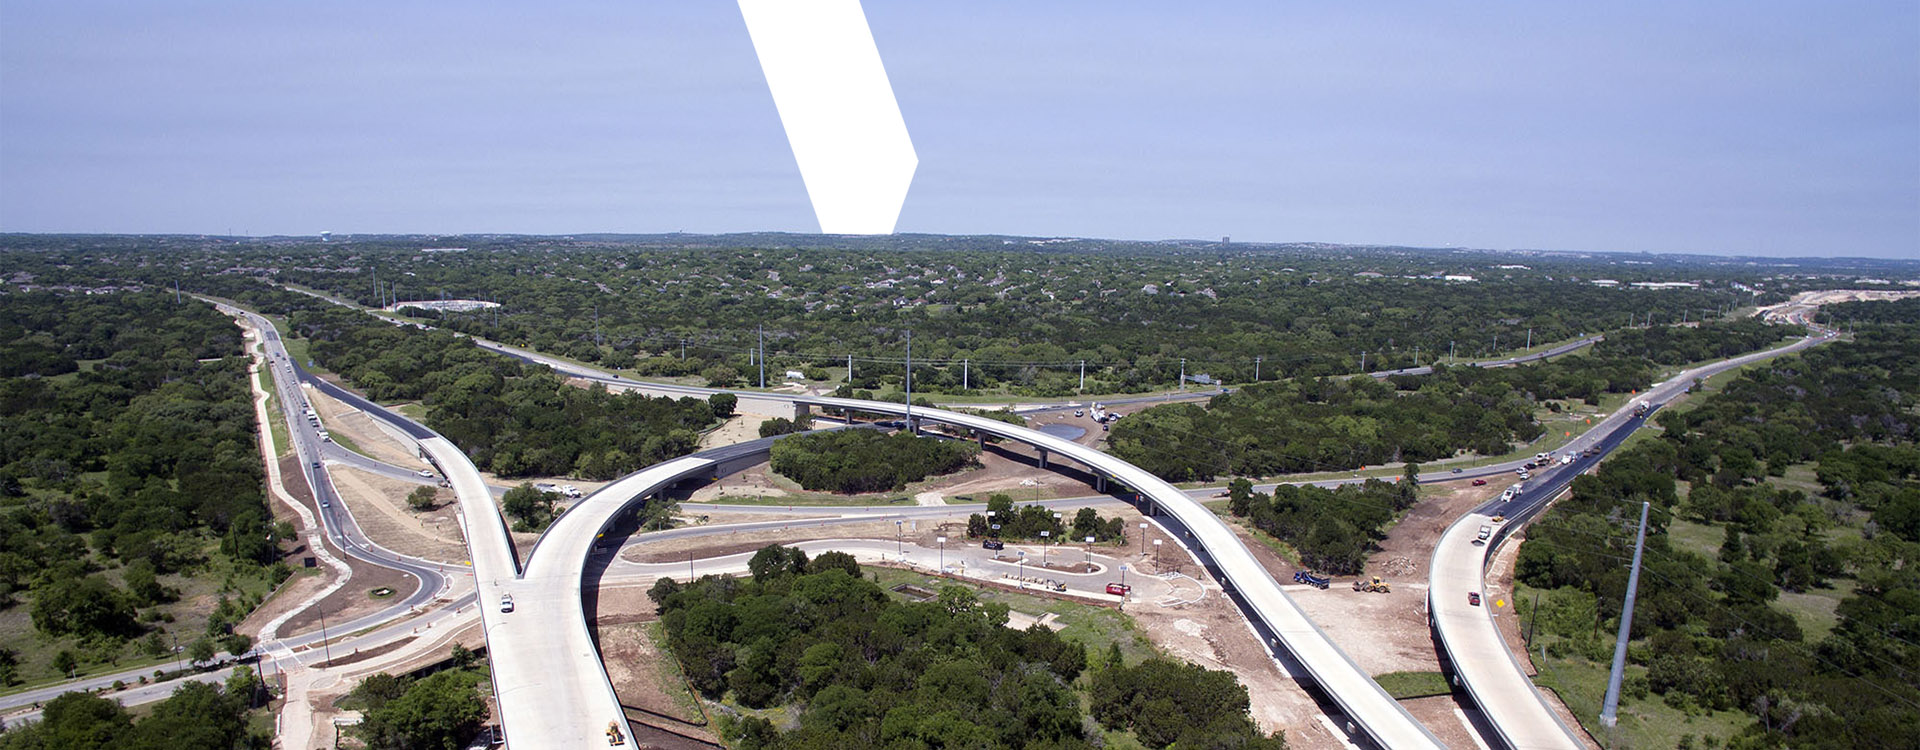 bnr-wsp-45-southwest-mopac-interchange